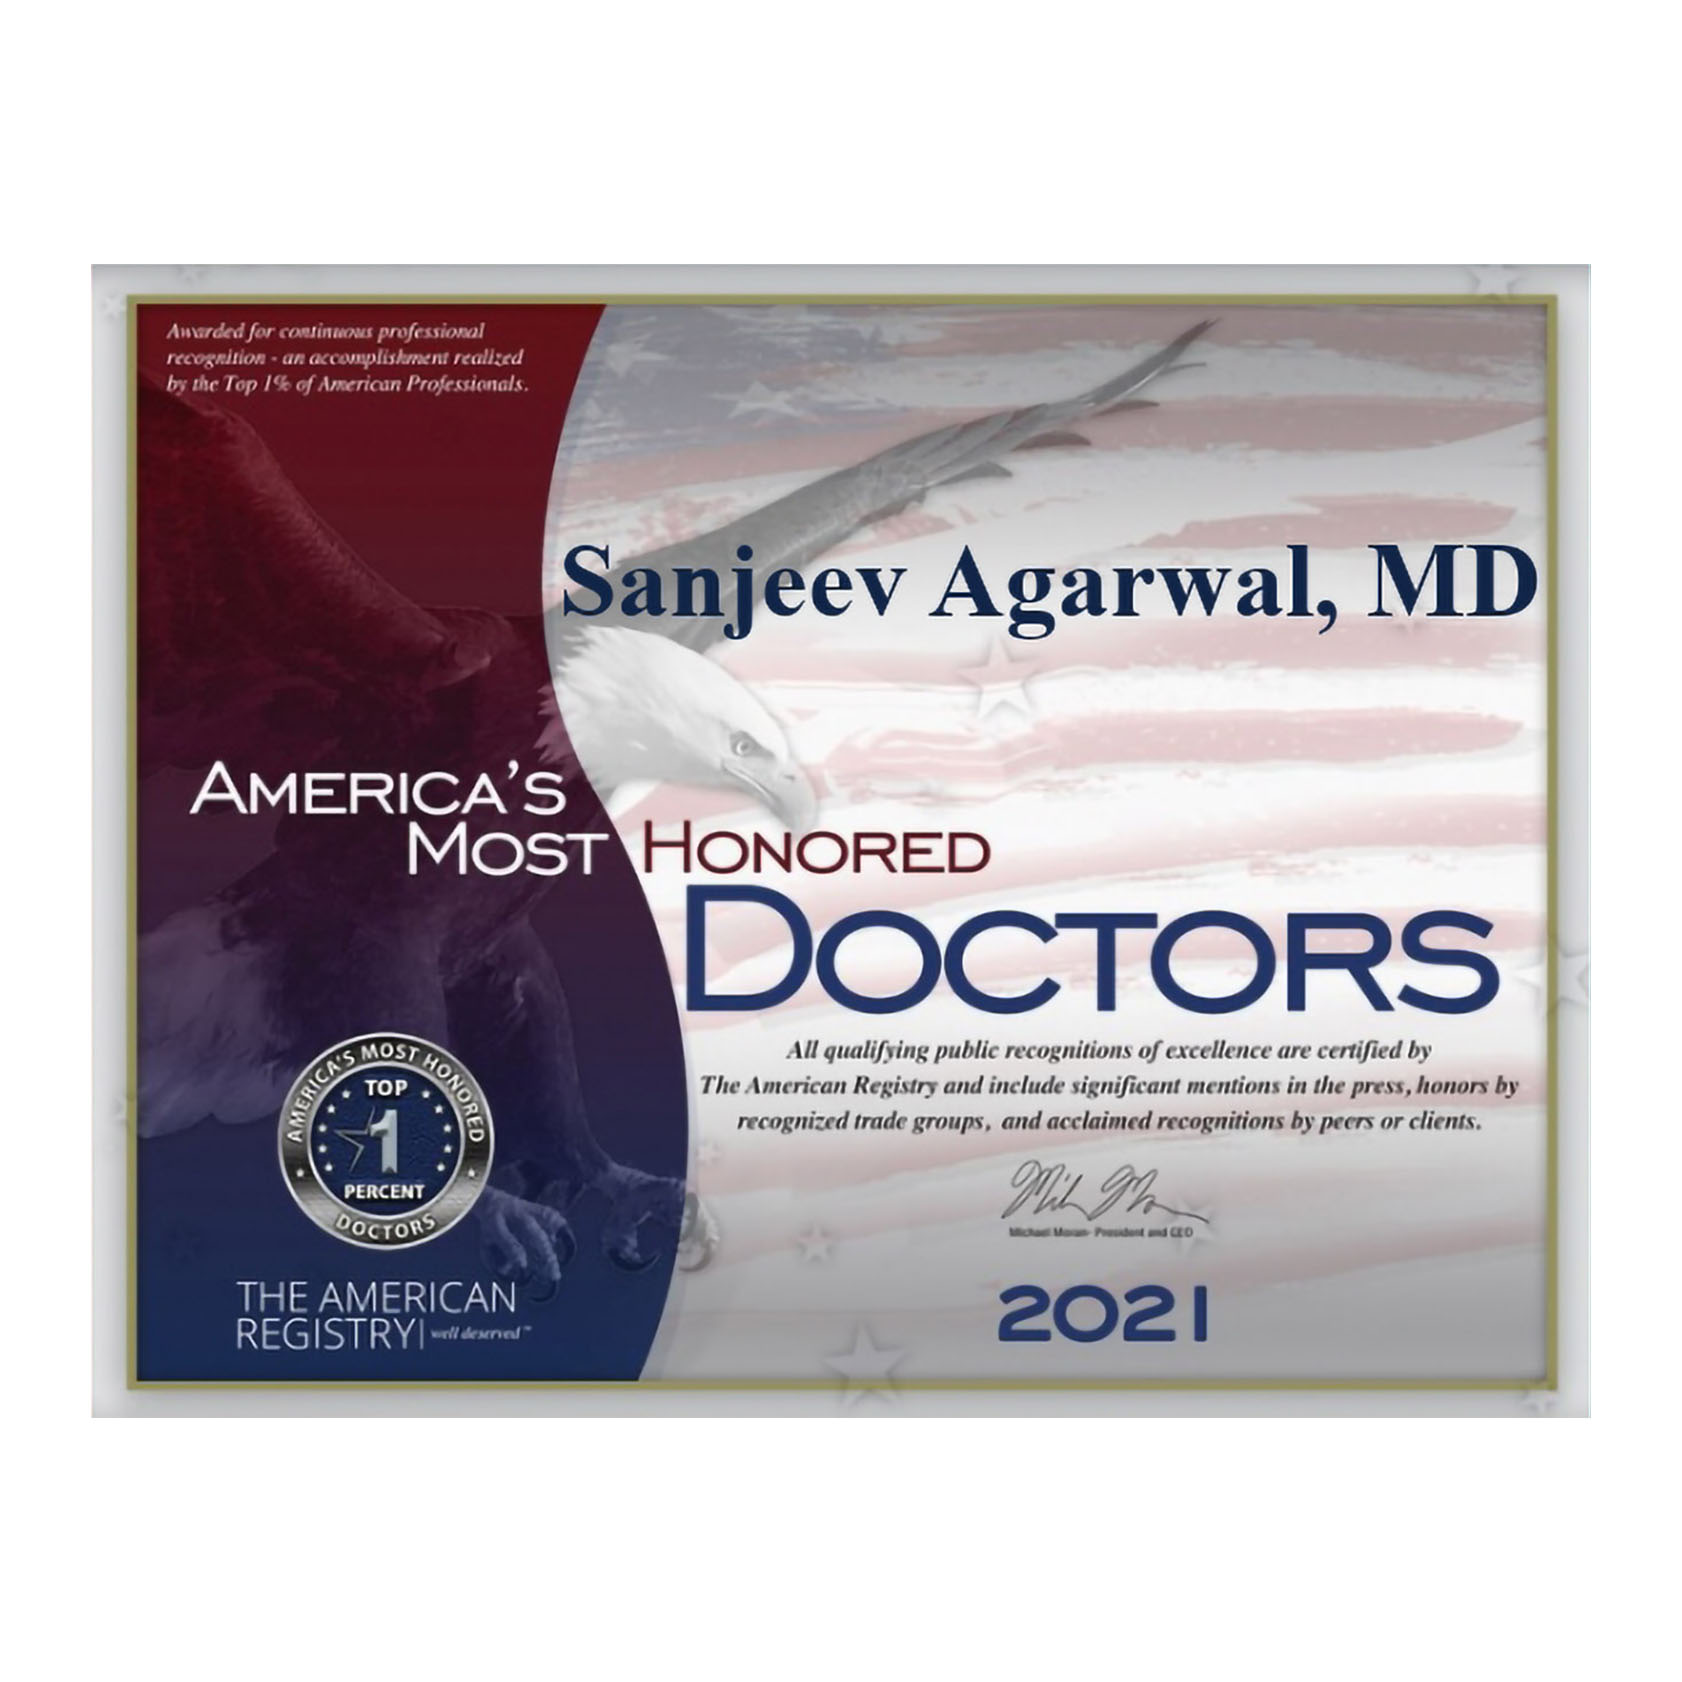 America's Most Honored Doctors - 2021